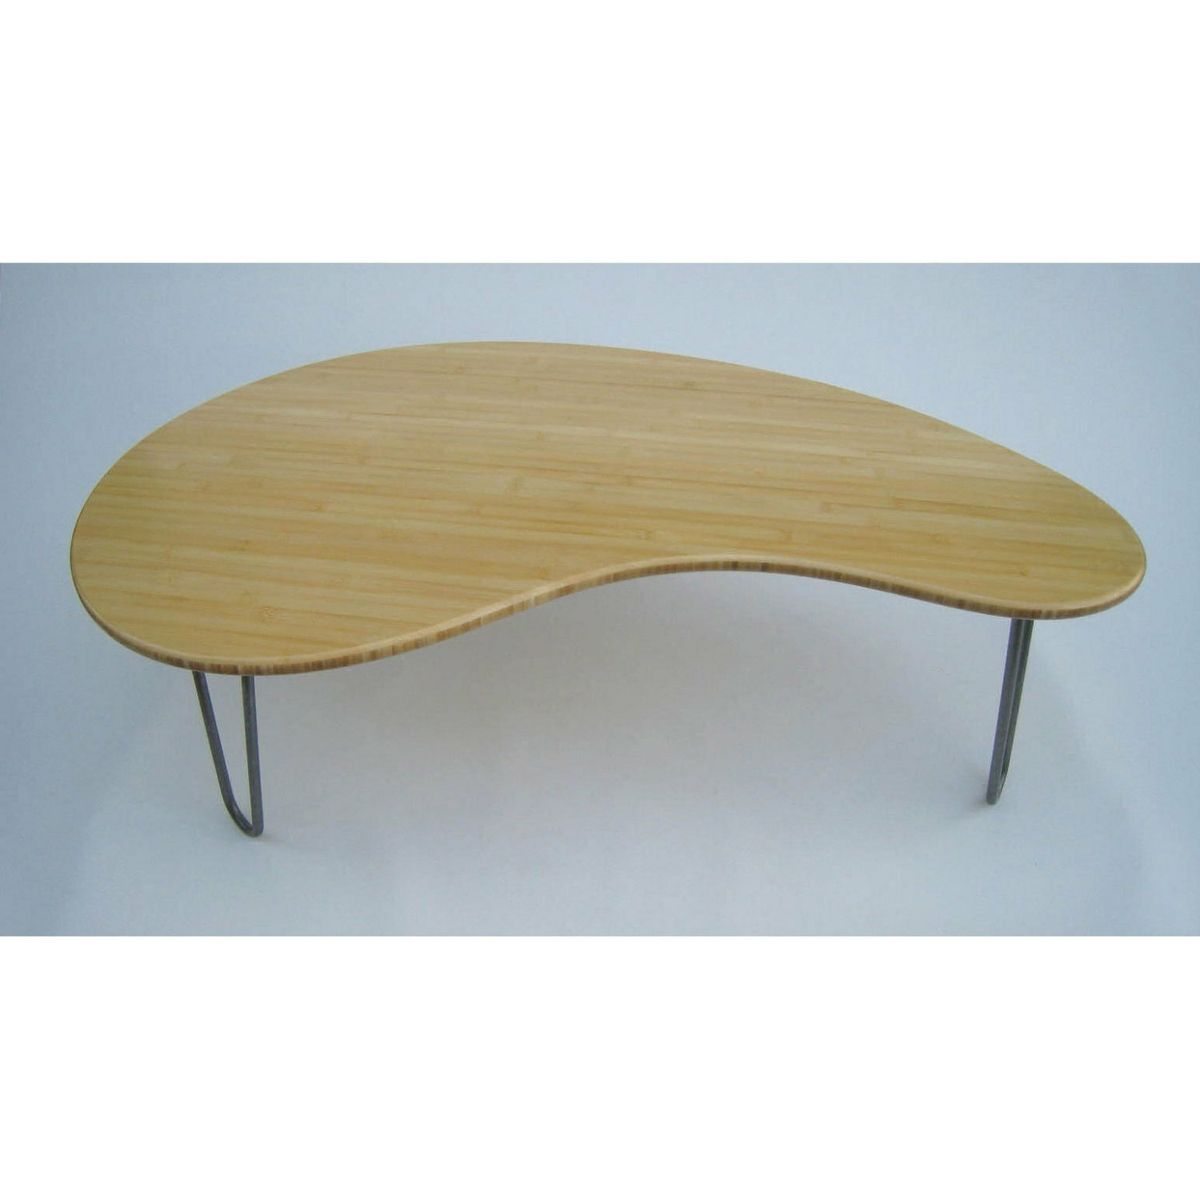 Buy a hand crafted kidney bean shaped coffee table mid century custom made kidney bean shaped coffee table mid century modern atomic era design in geotapseo Choice Image